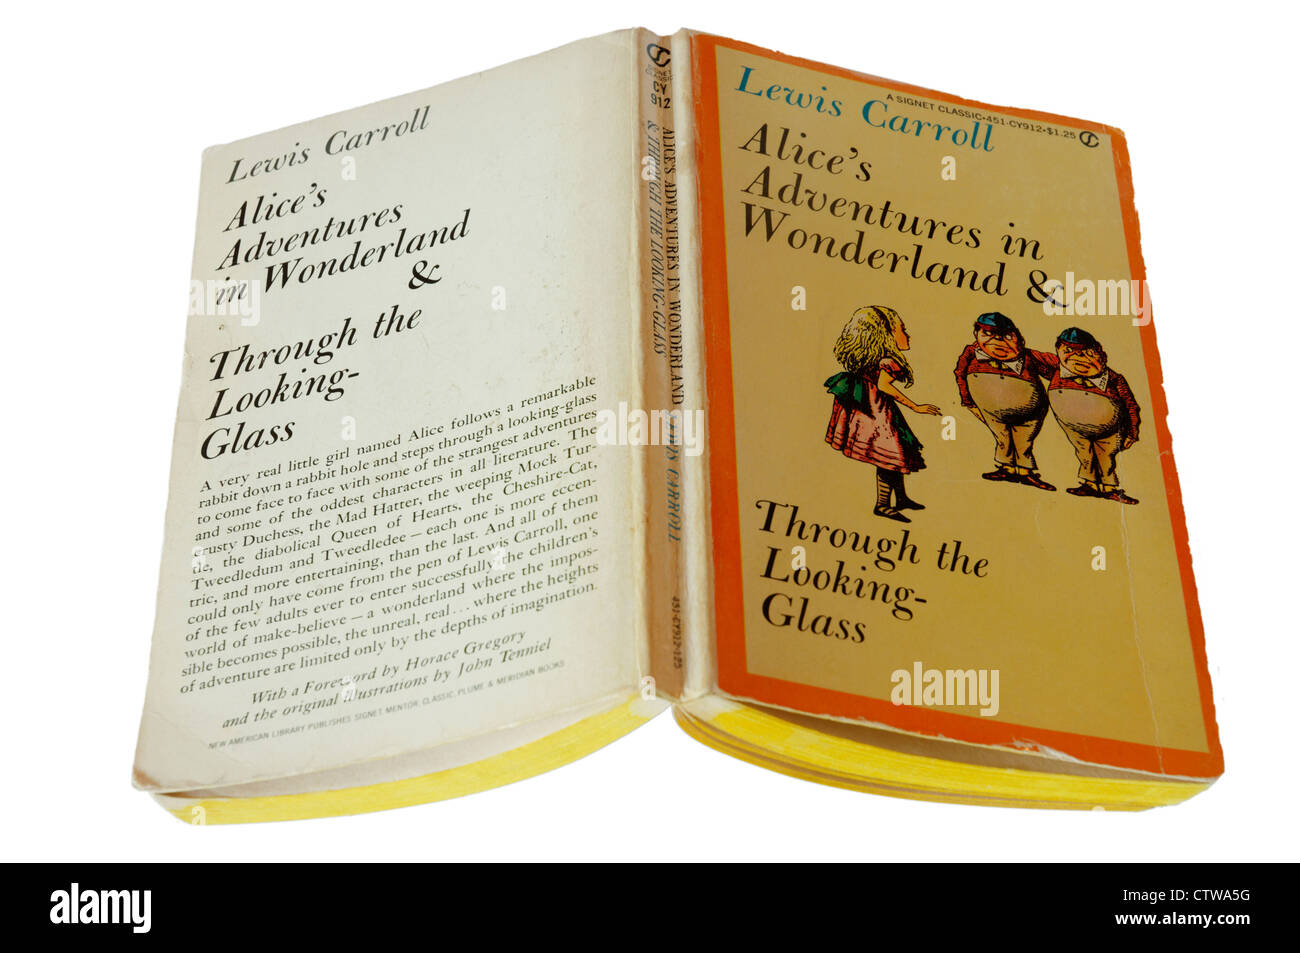 Alice's Adventures in Wonderland by Lewis Carroll - Stock Image